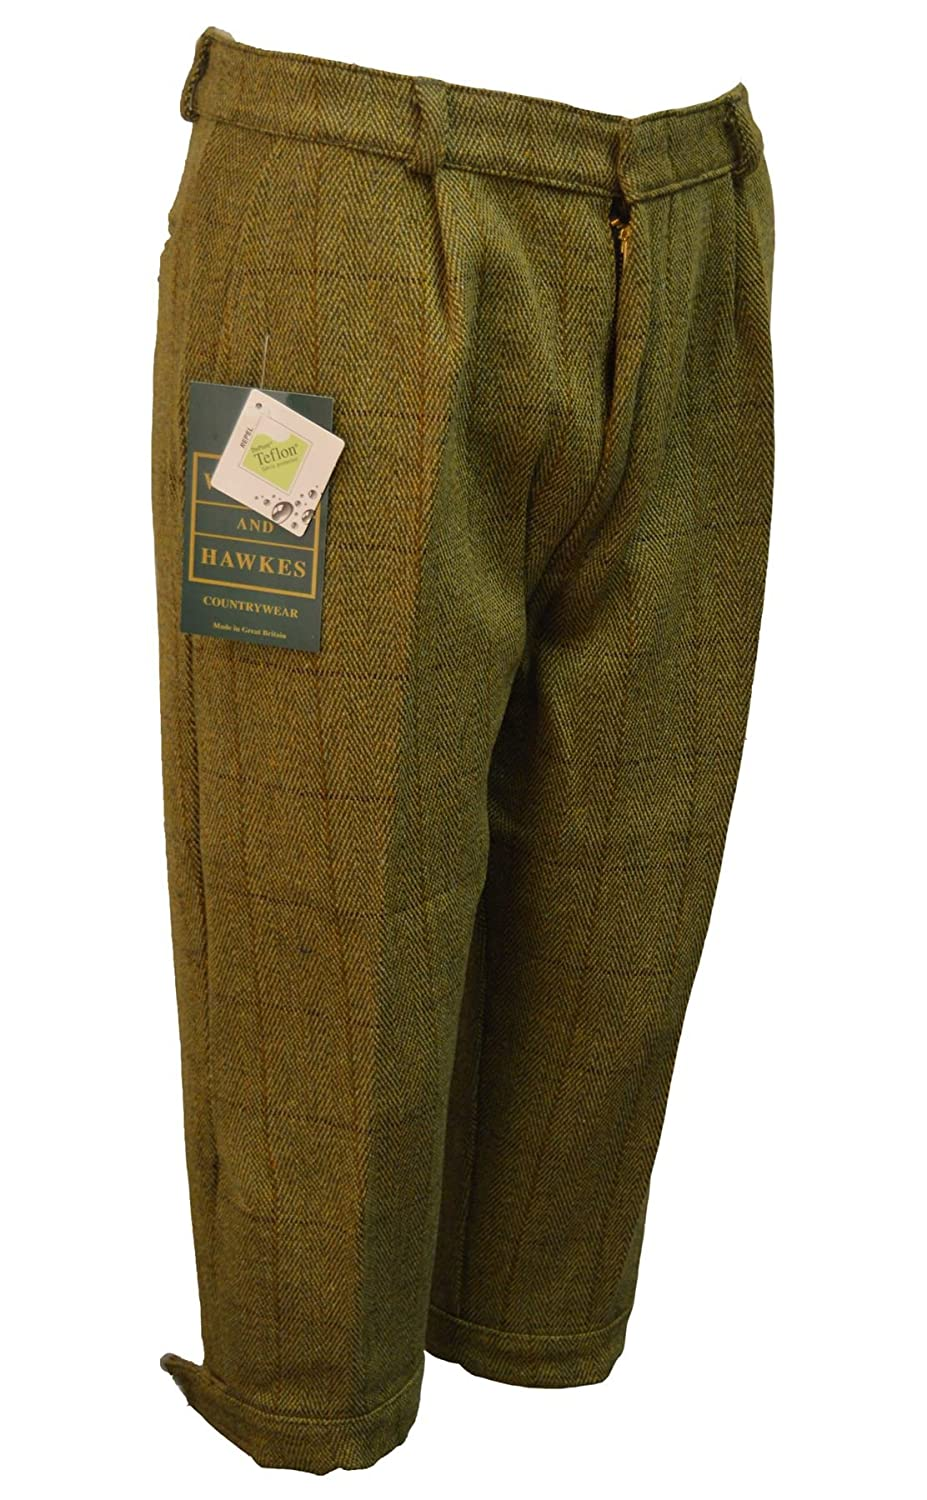 Men's Vintage Pants, Trousers, Jeans, Overalls Walker & Hawkes - Mens Derby Tweed Shooting Plus Fours LONG Breeks Trousers - Light Sage - 32-42 $76.99 AT vintagedancer.com